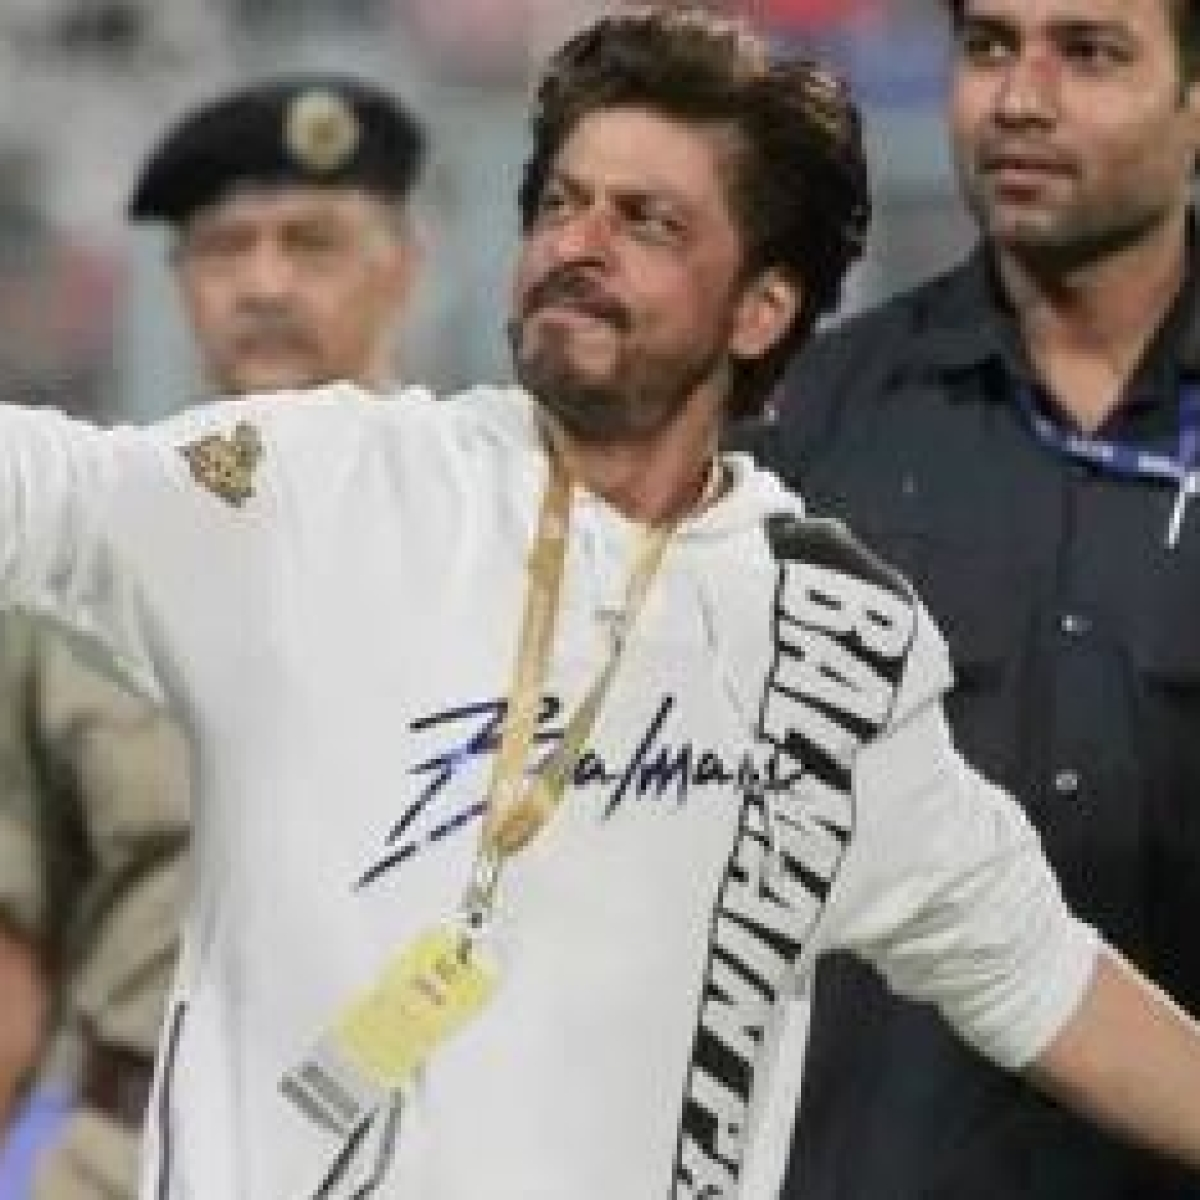 Shah Rukh Khan's KKR extends support in aftermath of Cyclone Amphan